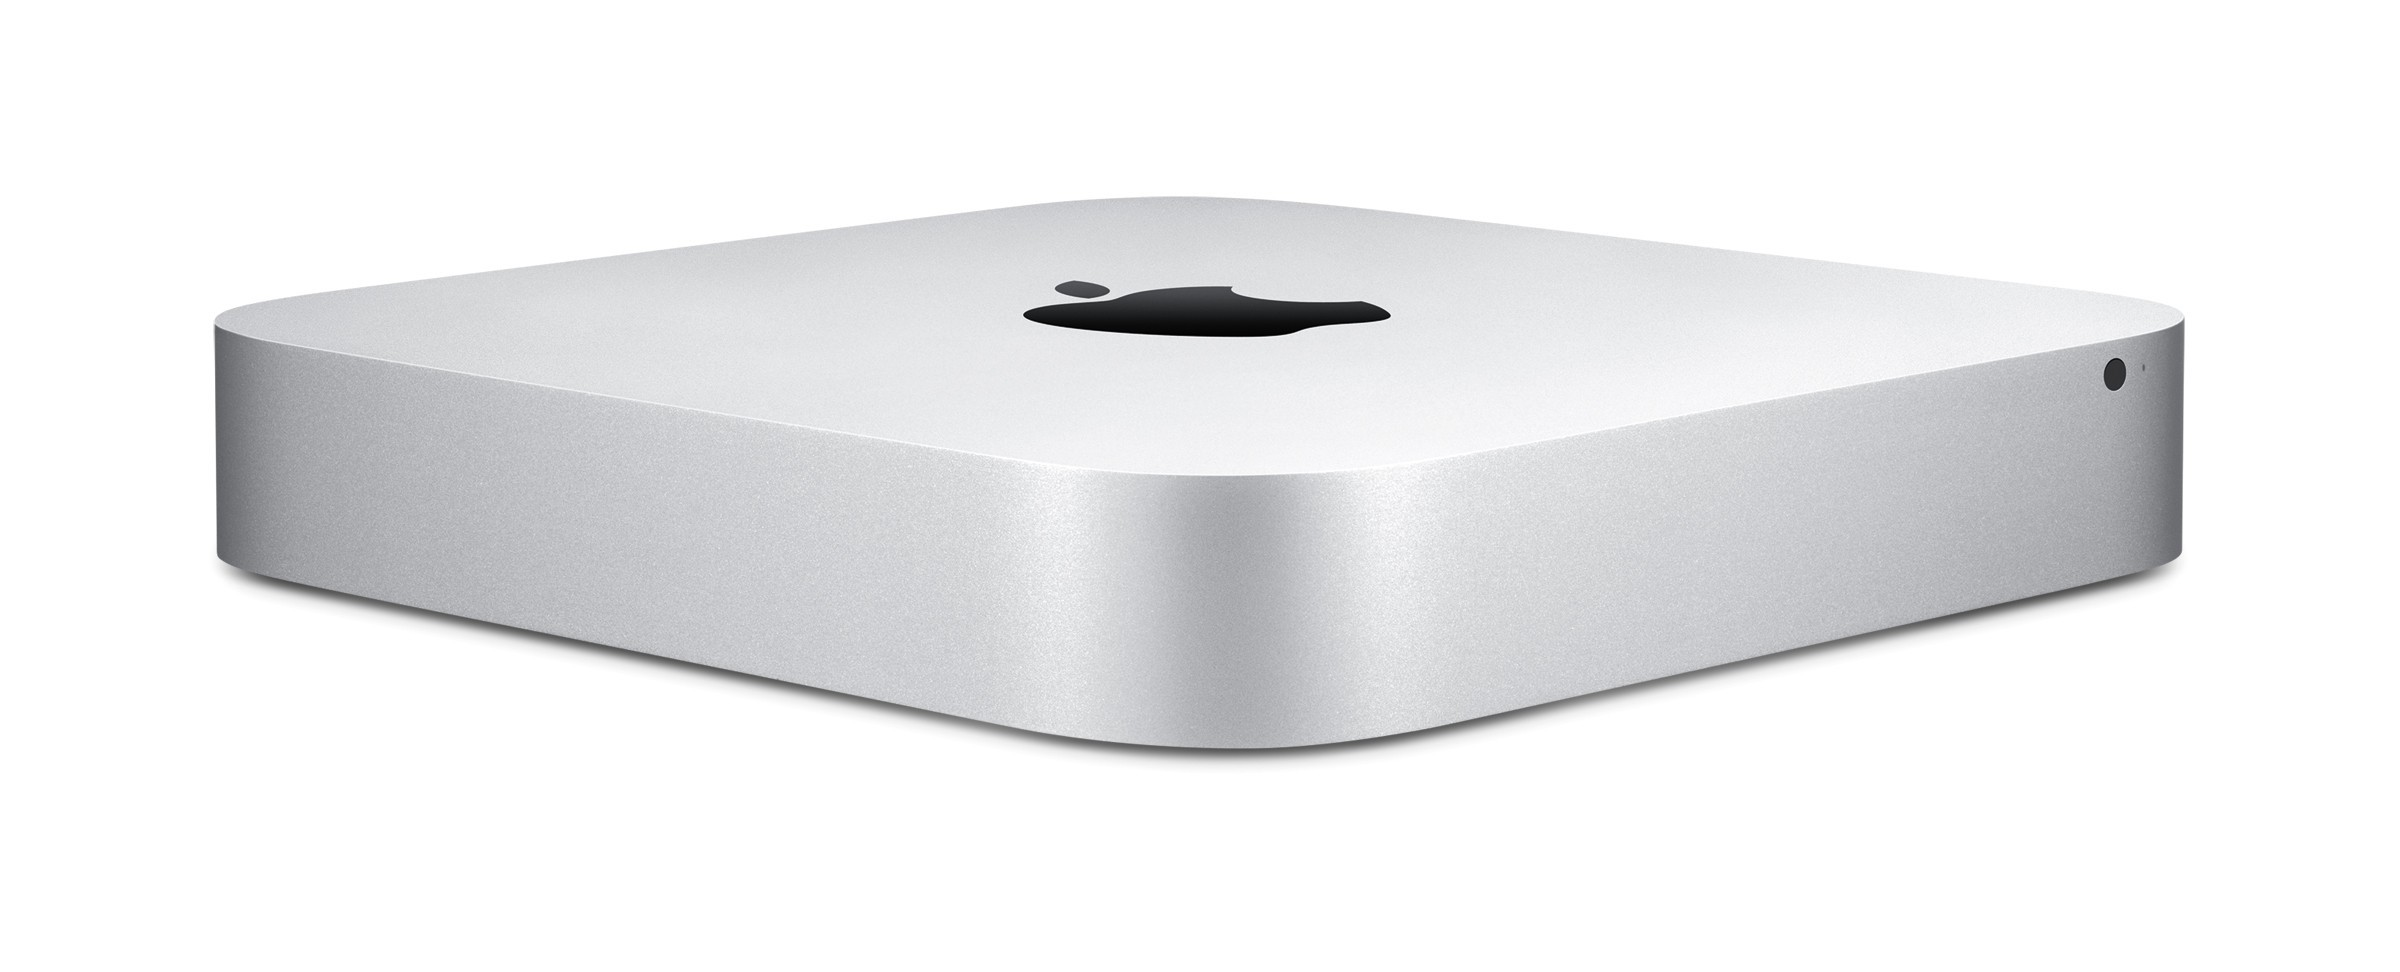 2.8GHz Mac mini